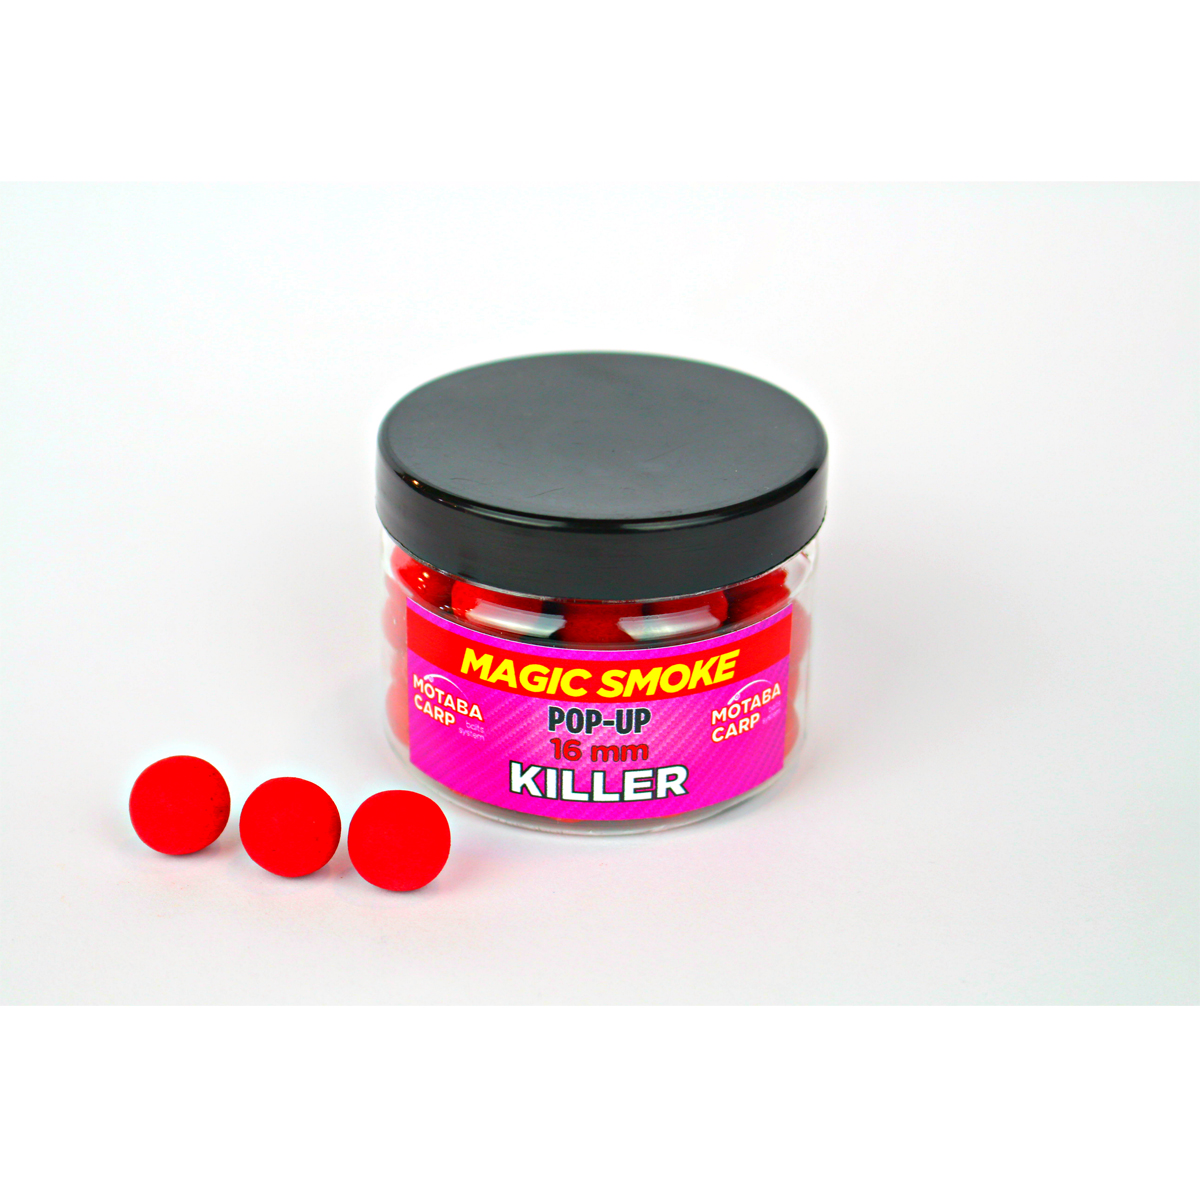 MOTABA CARP POP UP SMOKE KILLER 16MM